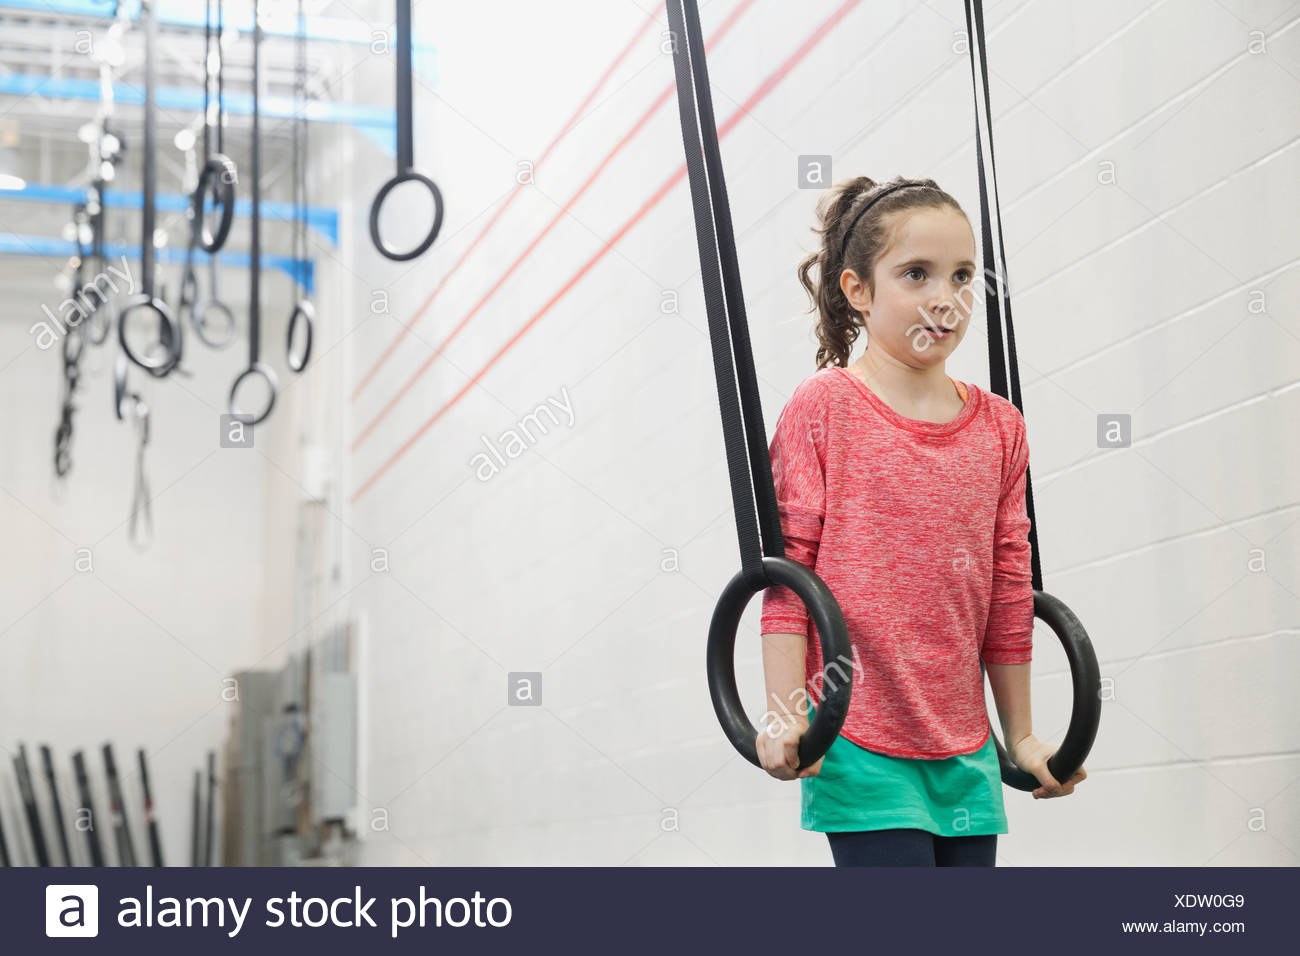 Girl exercising lifts with gymnastic rings - Stock Image